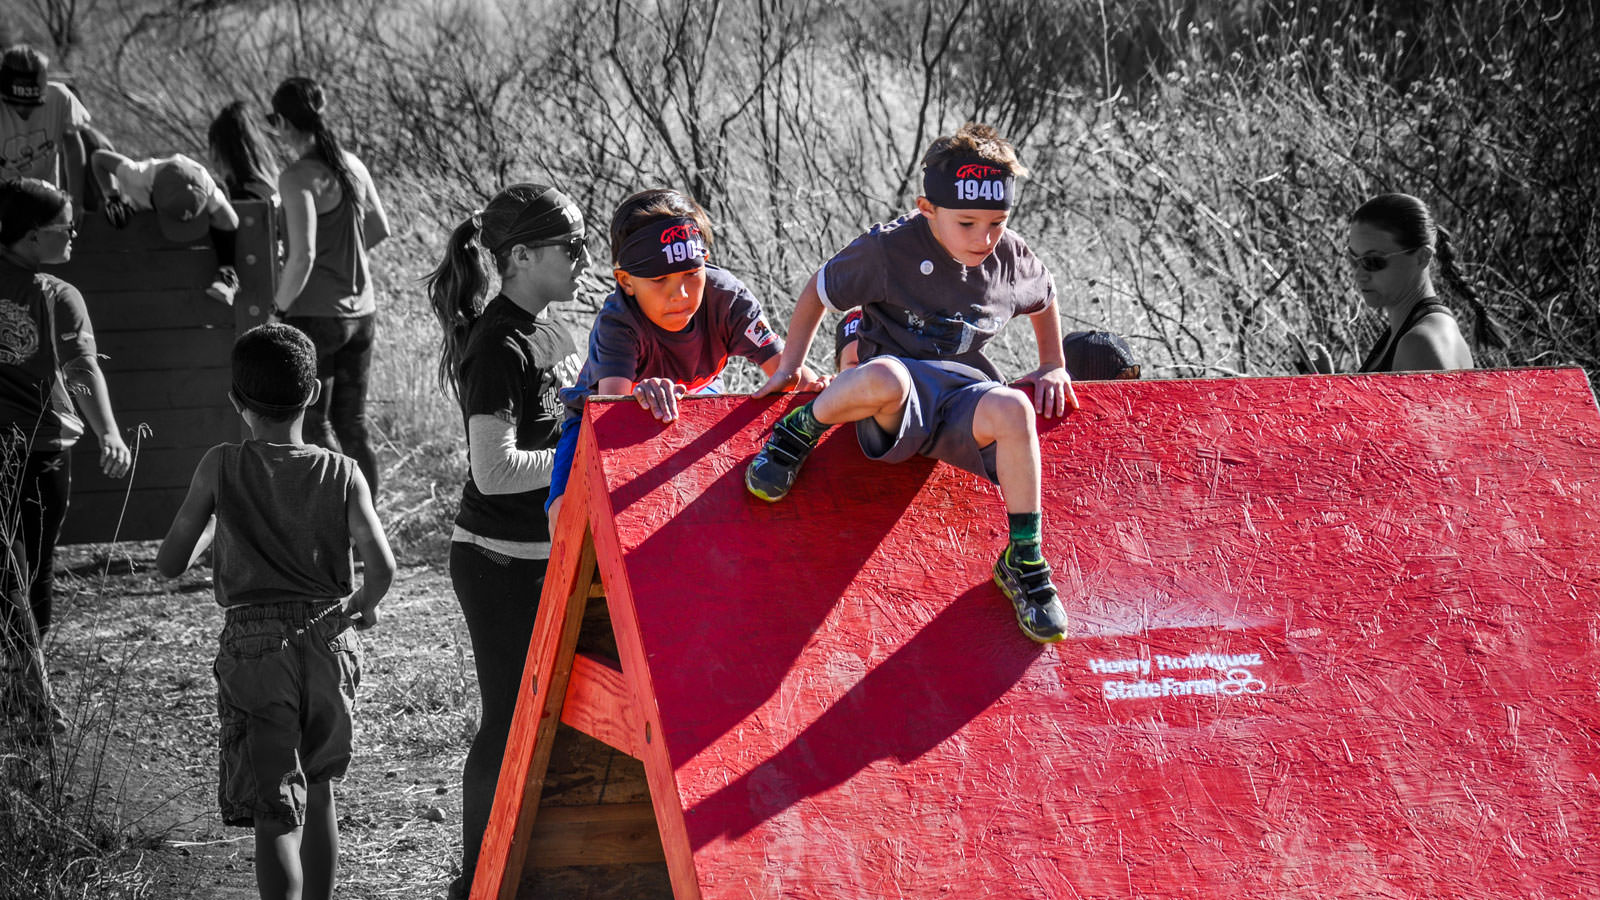 Grit Kids OCR